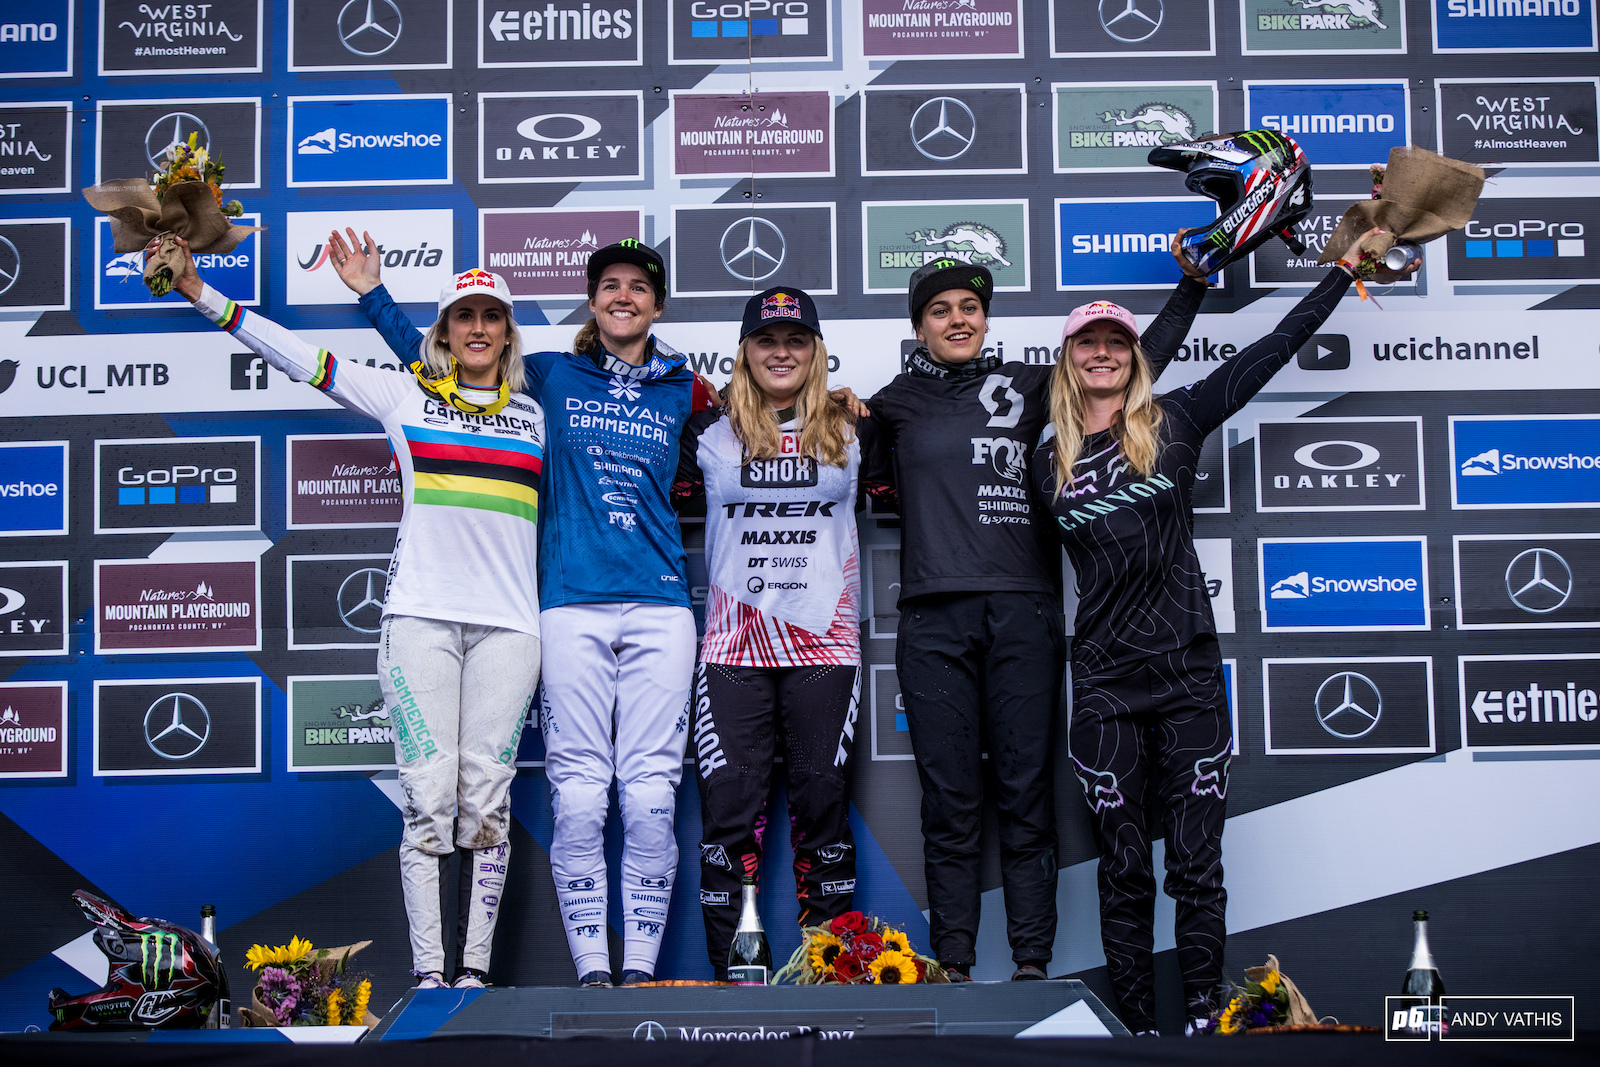 Your Women s Elite podium 1st Vali Holl 2nd Camille Balanche 3rd Marine Cabirou 4th Myriam Nicole and 5th Tahnee Seagrave